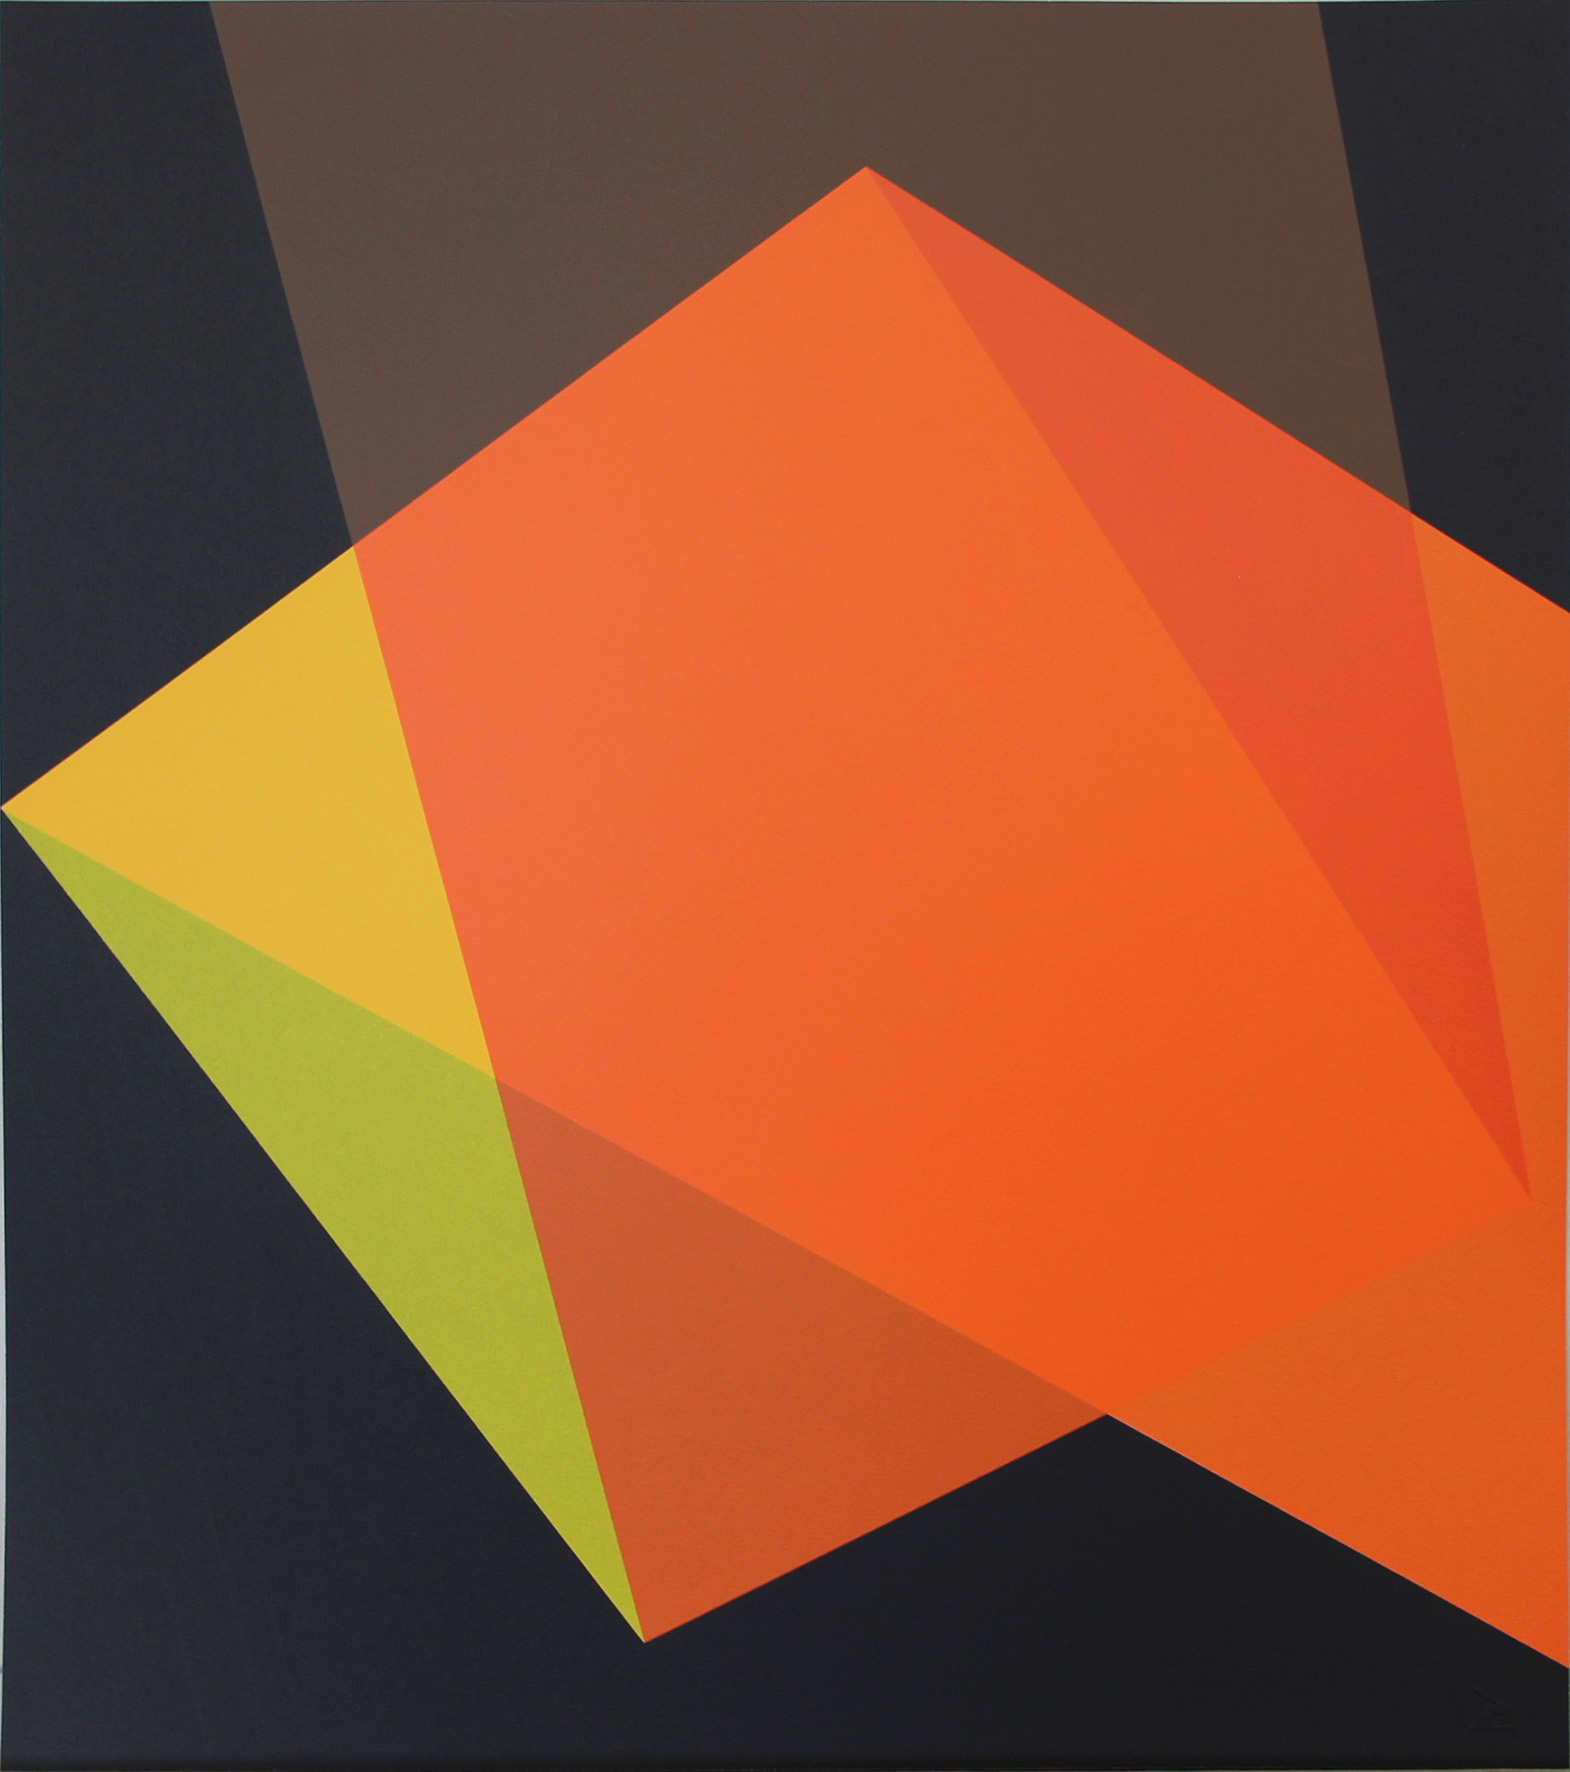 Willard Boepple, Quartet Orange    Date:  2017  Size (cm - unframed):  56 x 62.9   Technique:  Screenprint  Materials:  Somerset Velvet 300gsm  Edition size:  20  Publisher:  The Print Studio  Copyright:  The Artist   P.O.A.